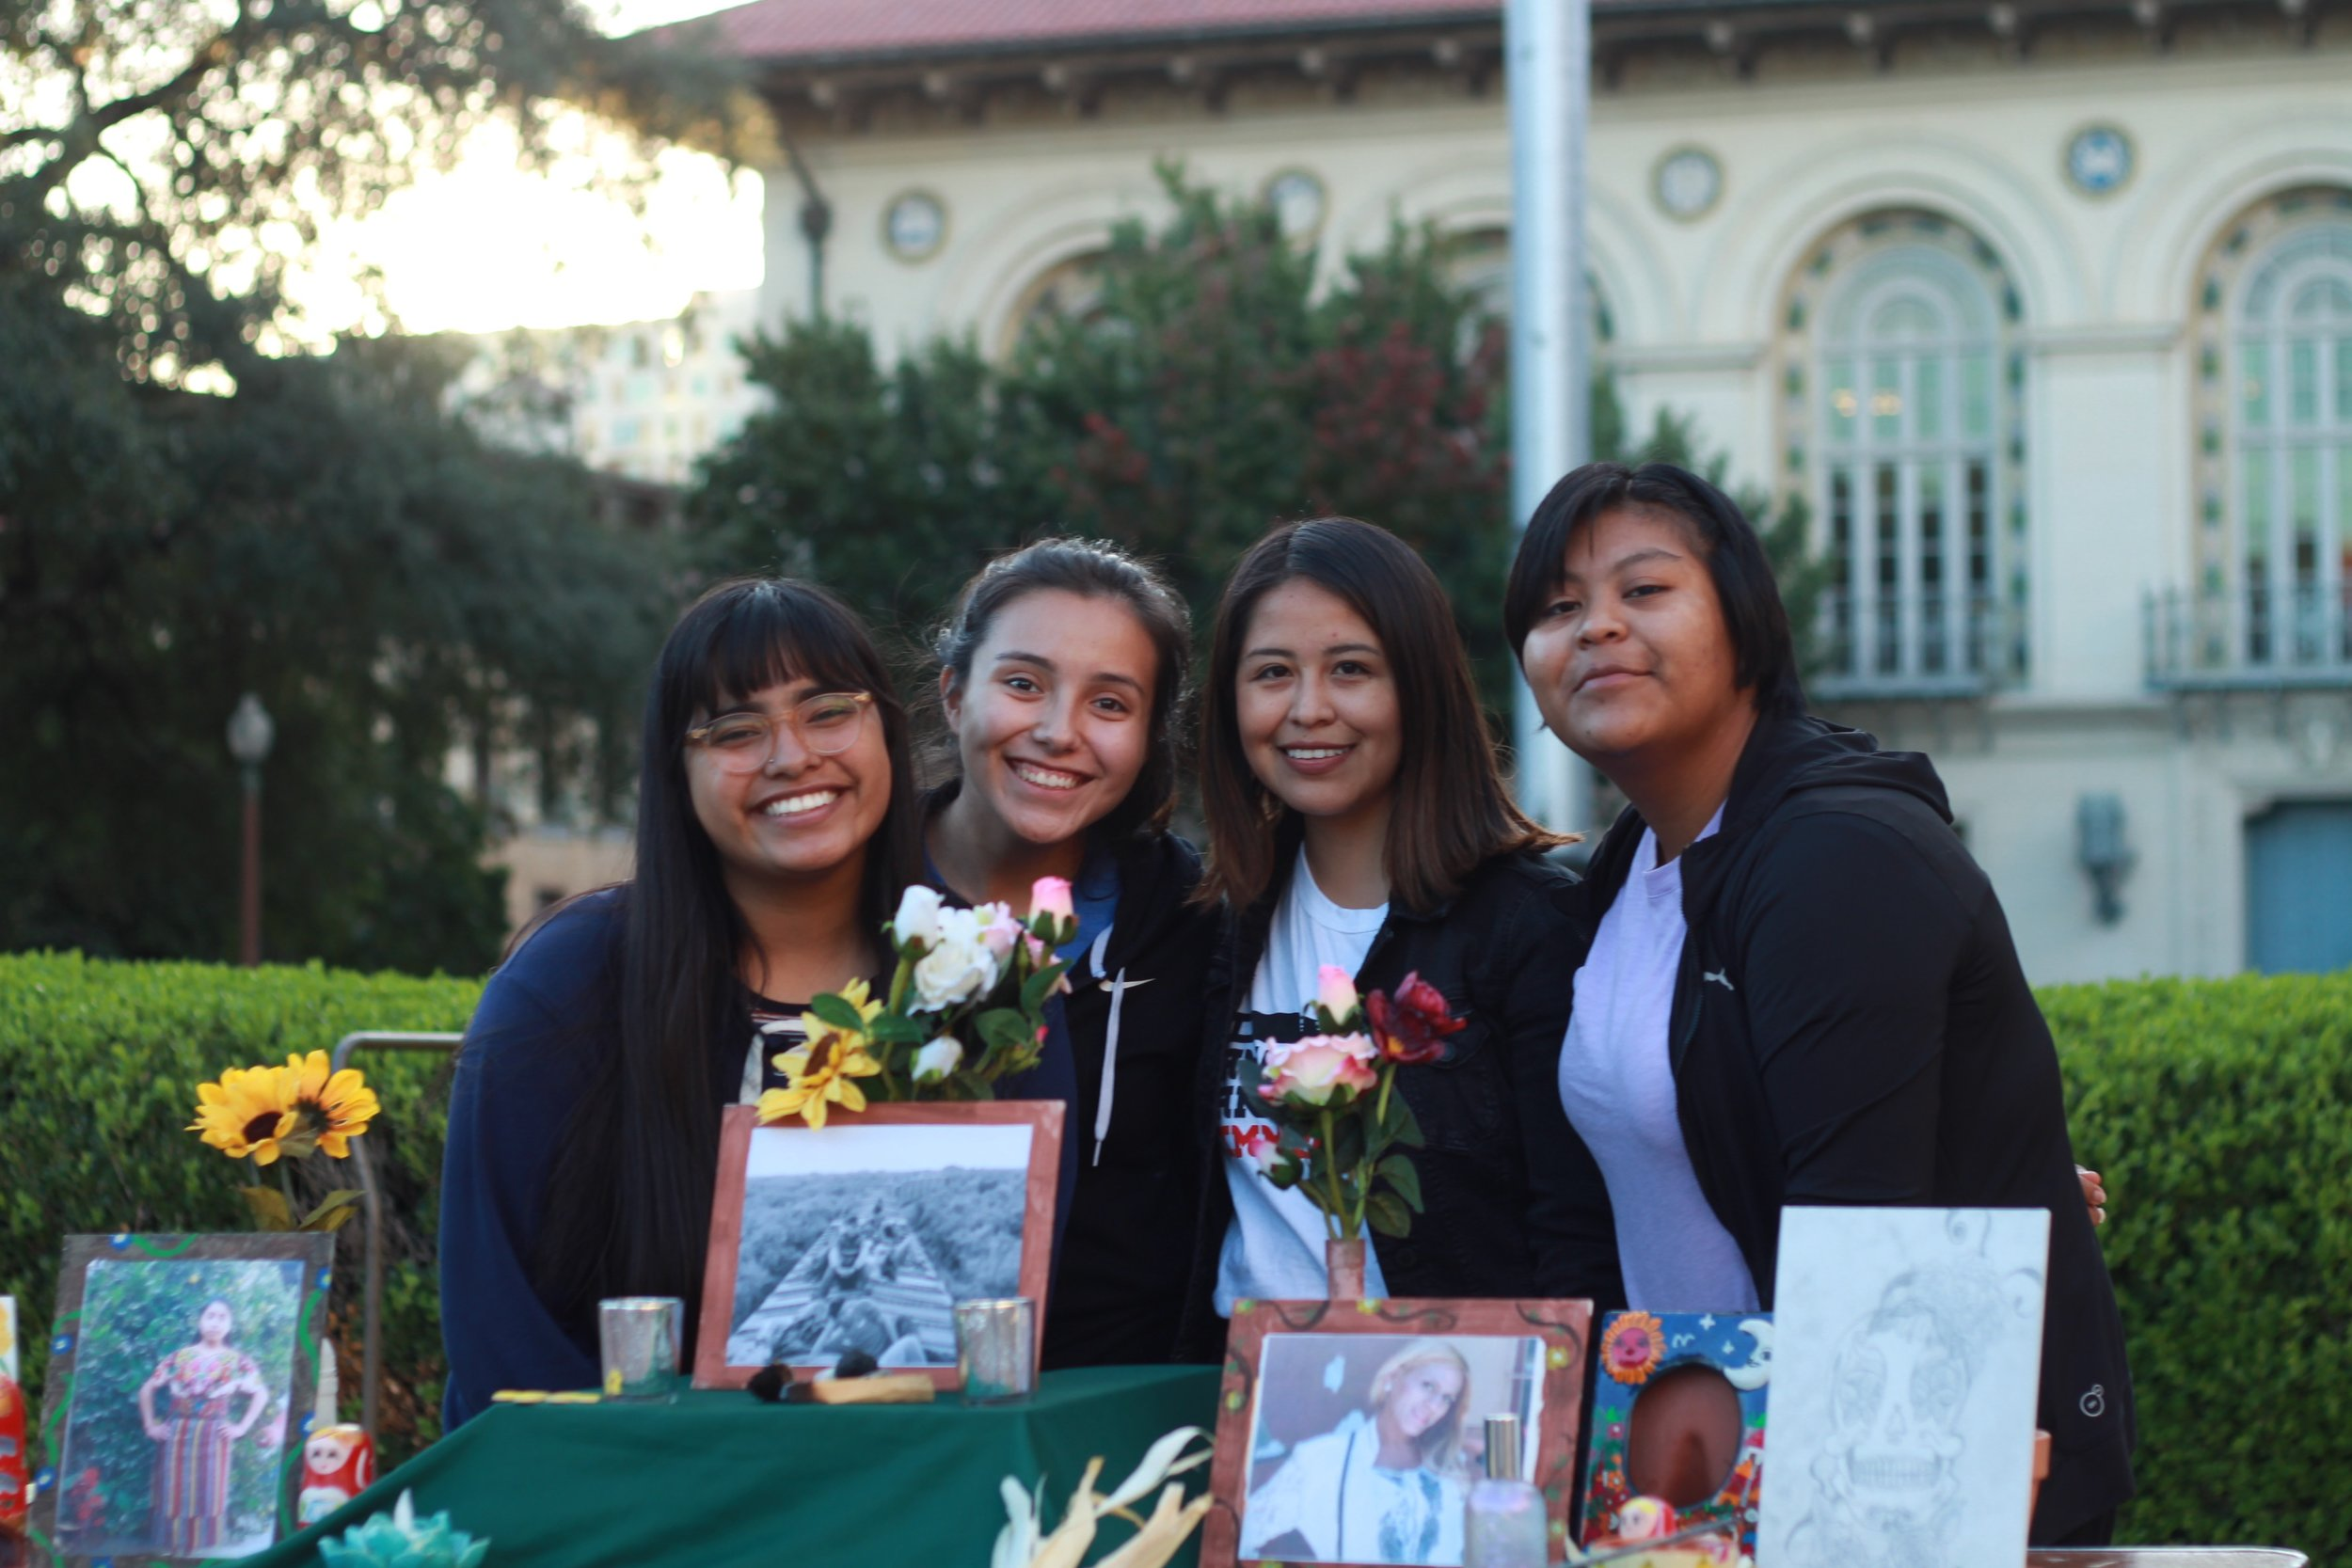 Maria Jose De La Cruz, Mariana Monroy, Vanessa Rodriguez, and Diana Feliciano pay their respects to those who have lost their lives at the hands of racial and sexual oppression.